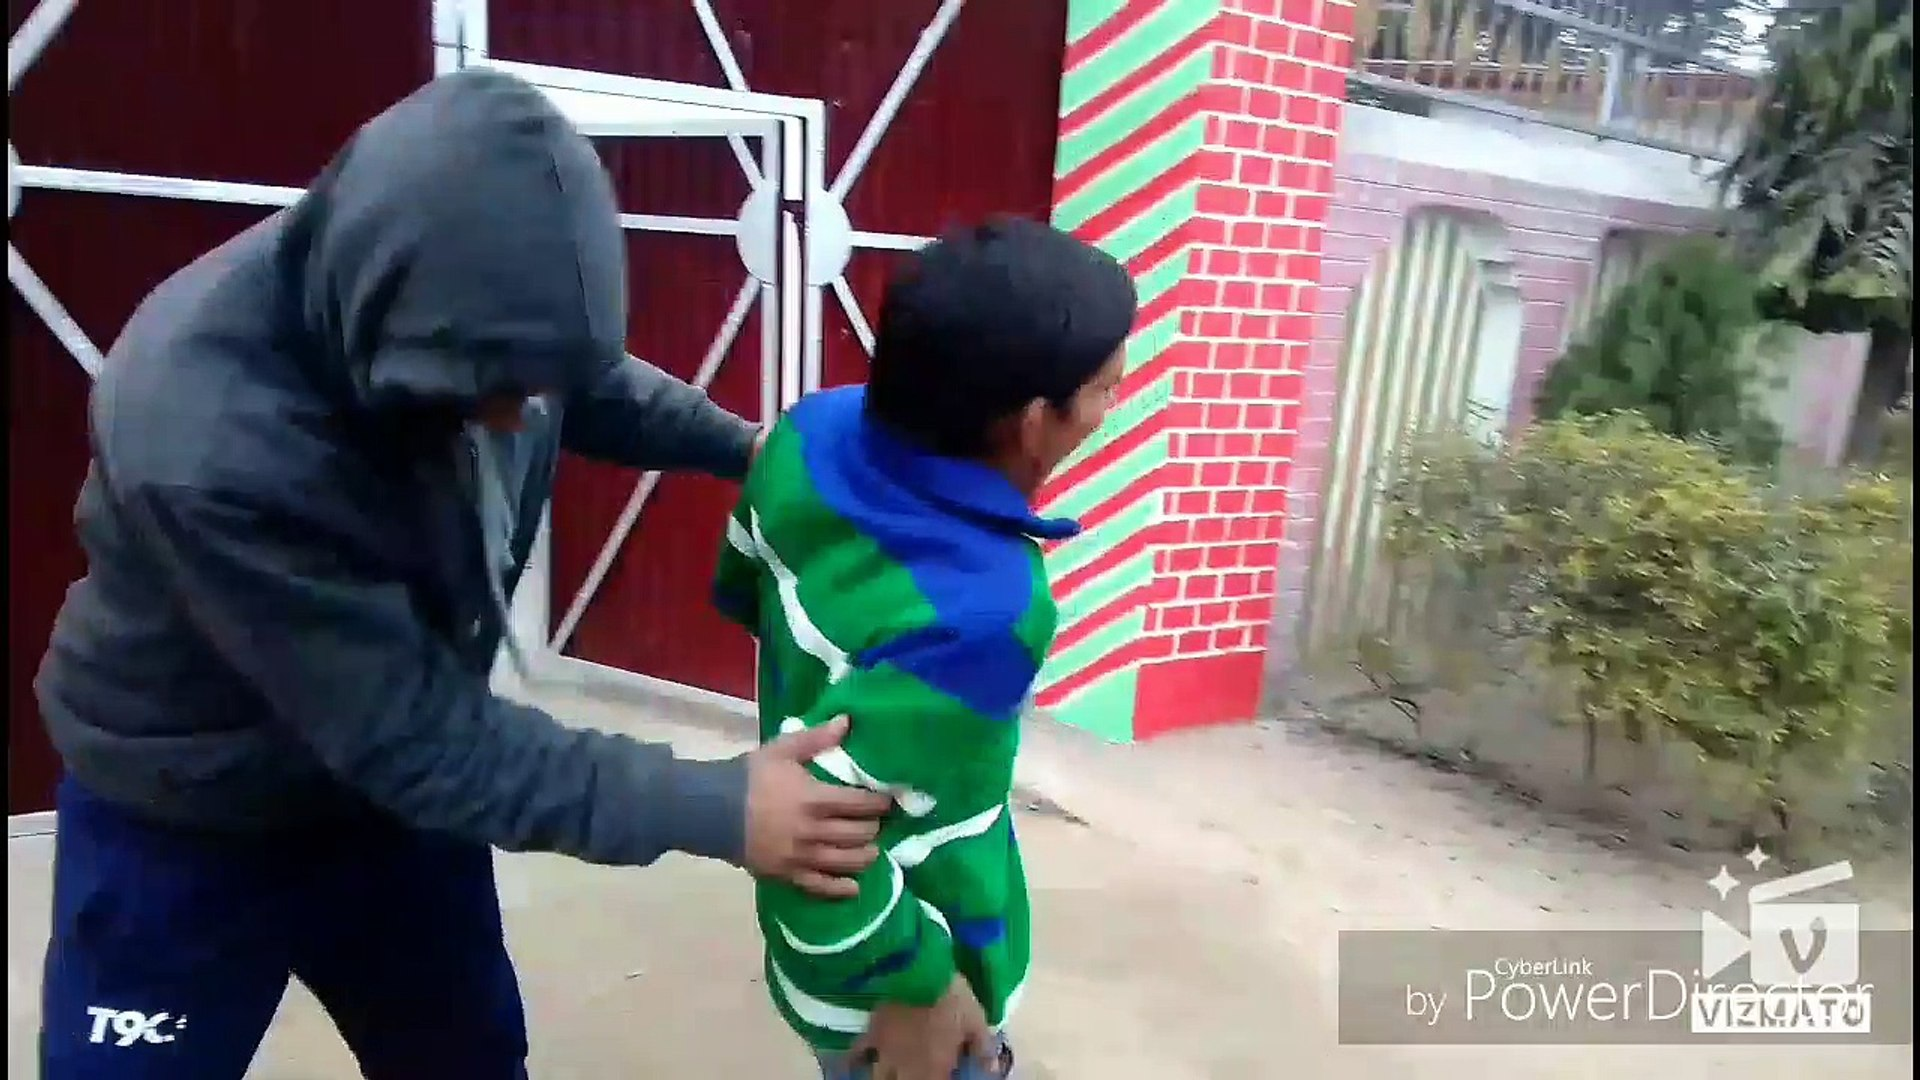 Funny Clips Videos |Comedy Funny Video | Best of Indian Comedy video| latest comedy|radhe devihana|f